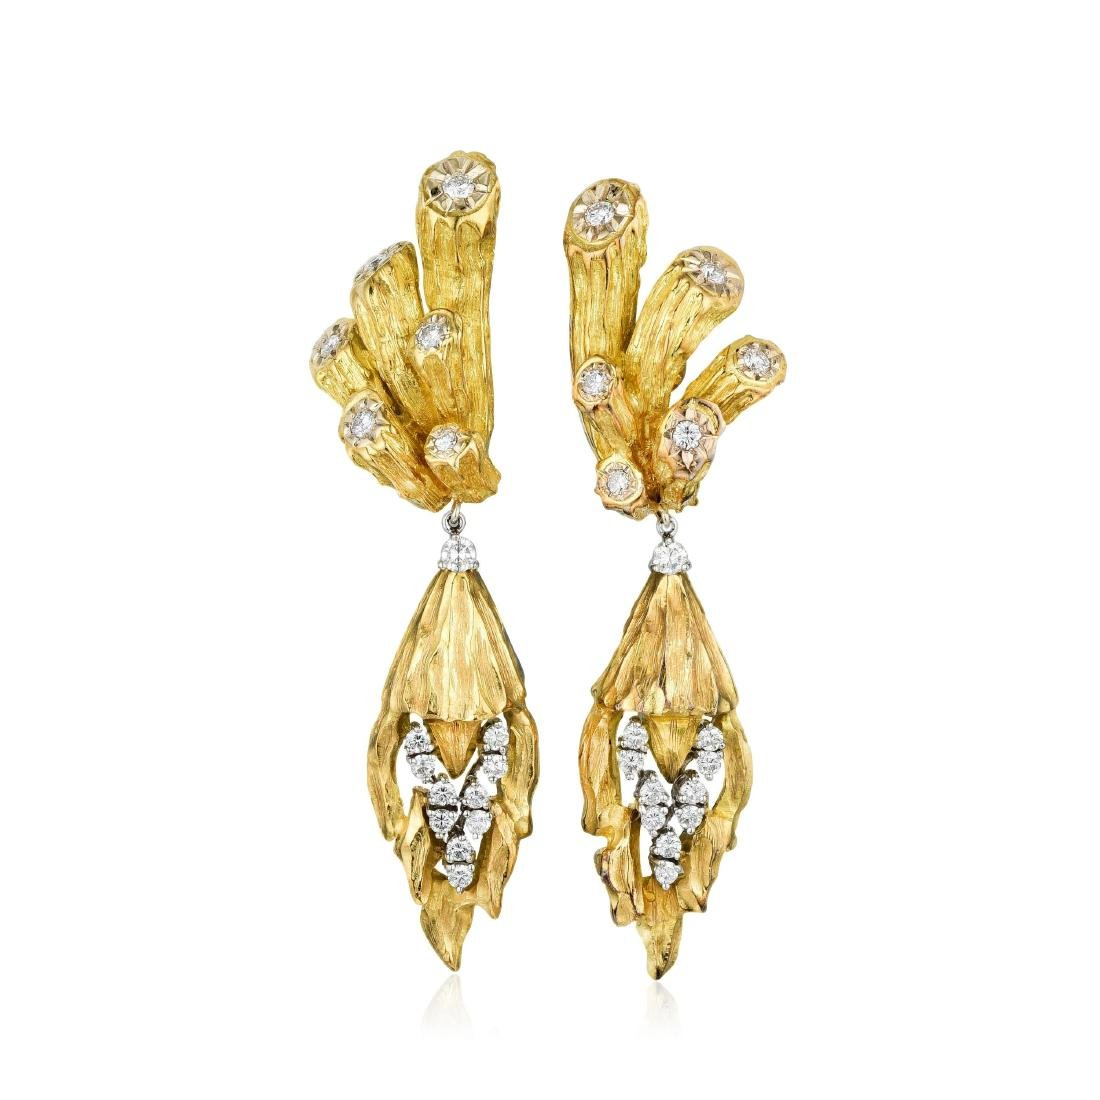 Diamond and Gold Pendant Earrings